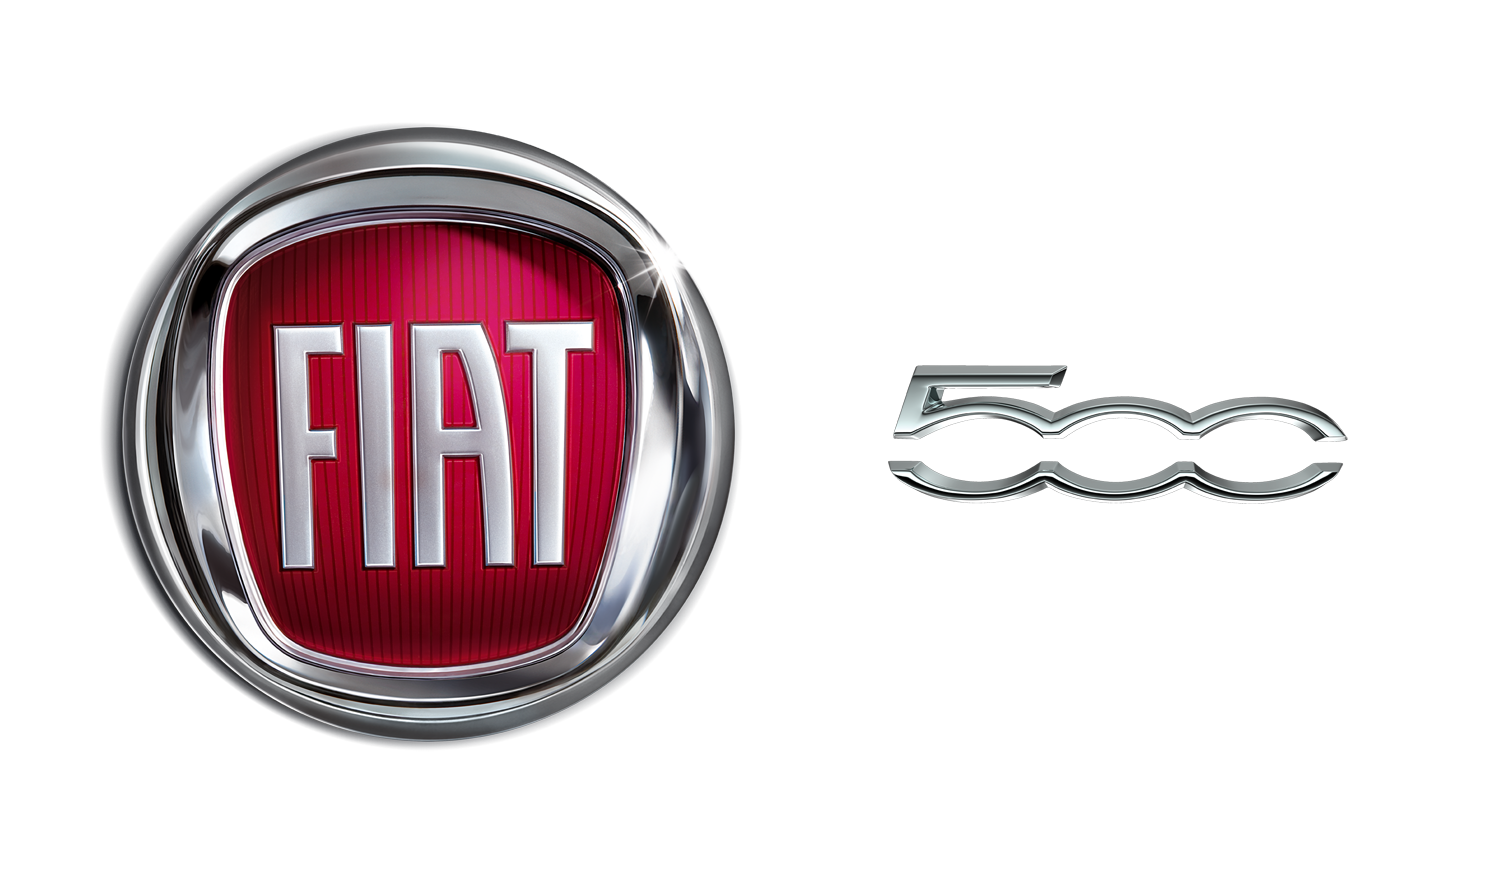 Image result for FIAT 500 LOGO